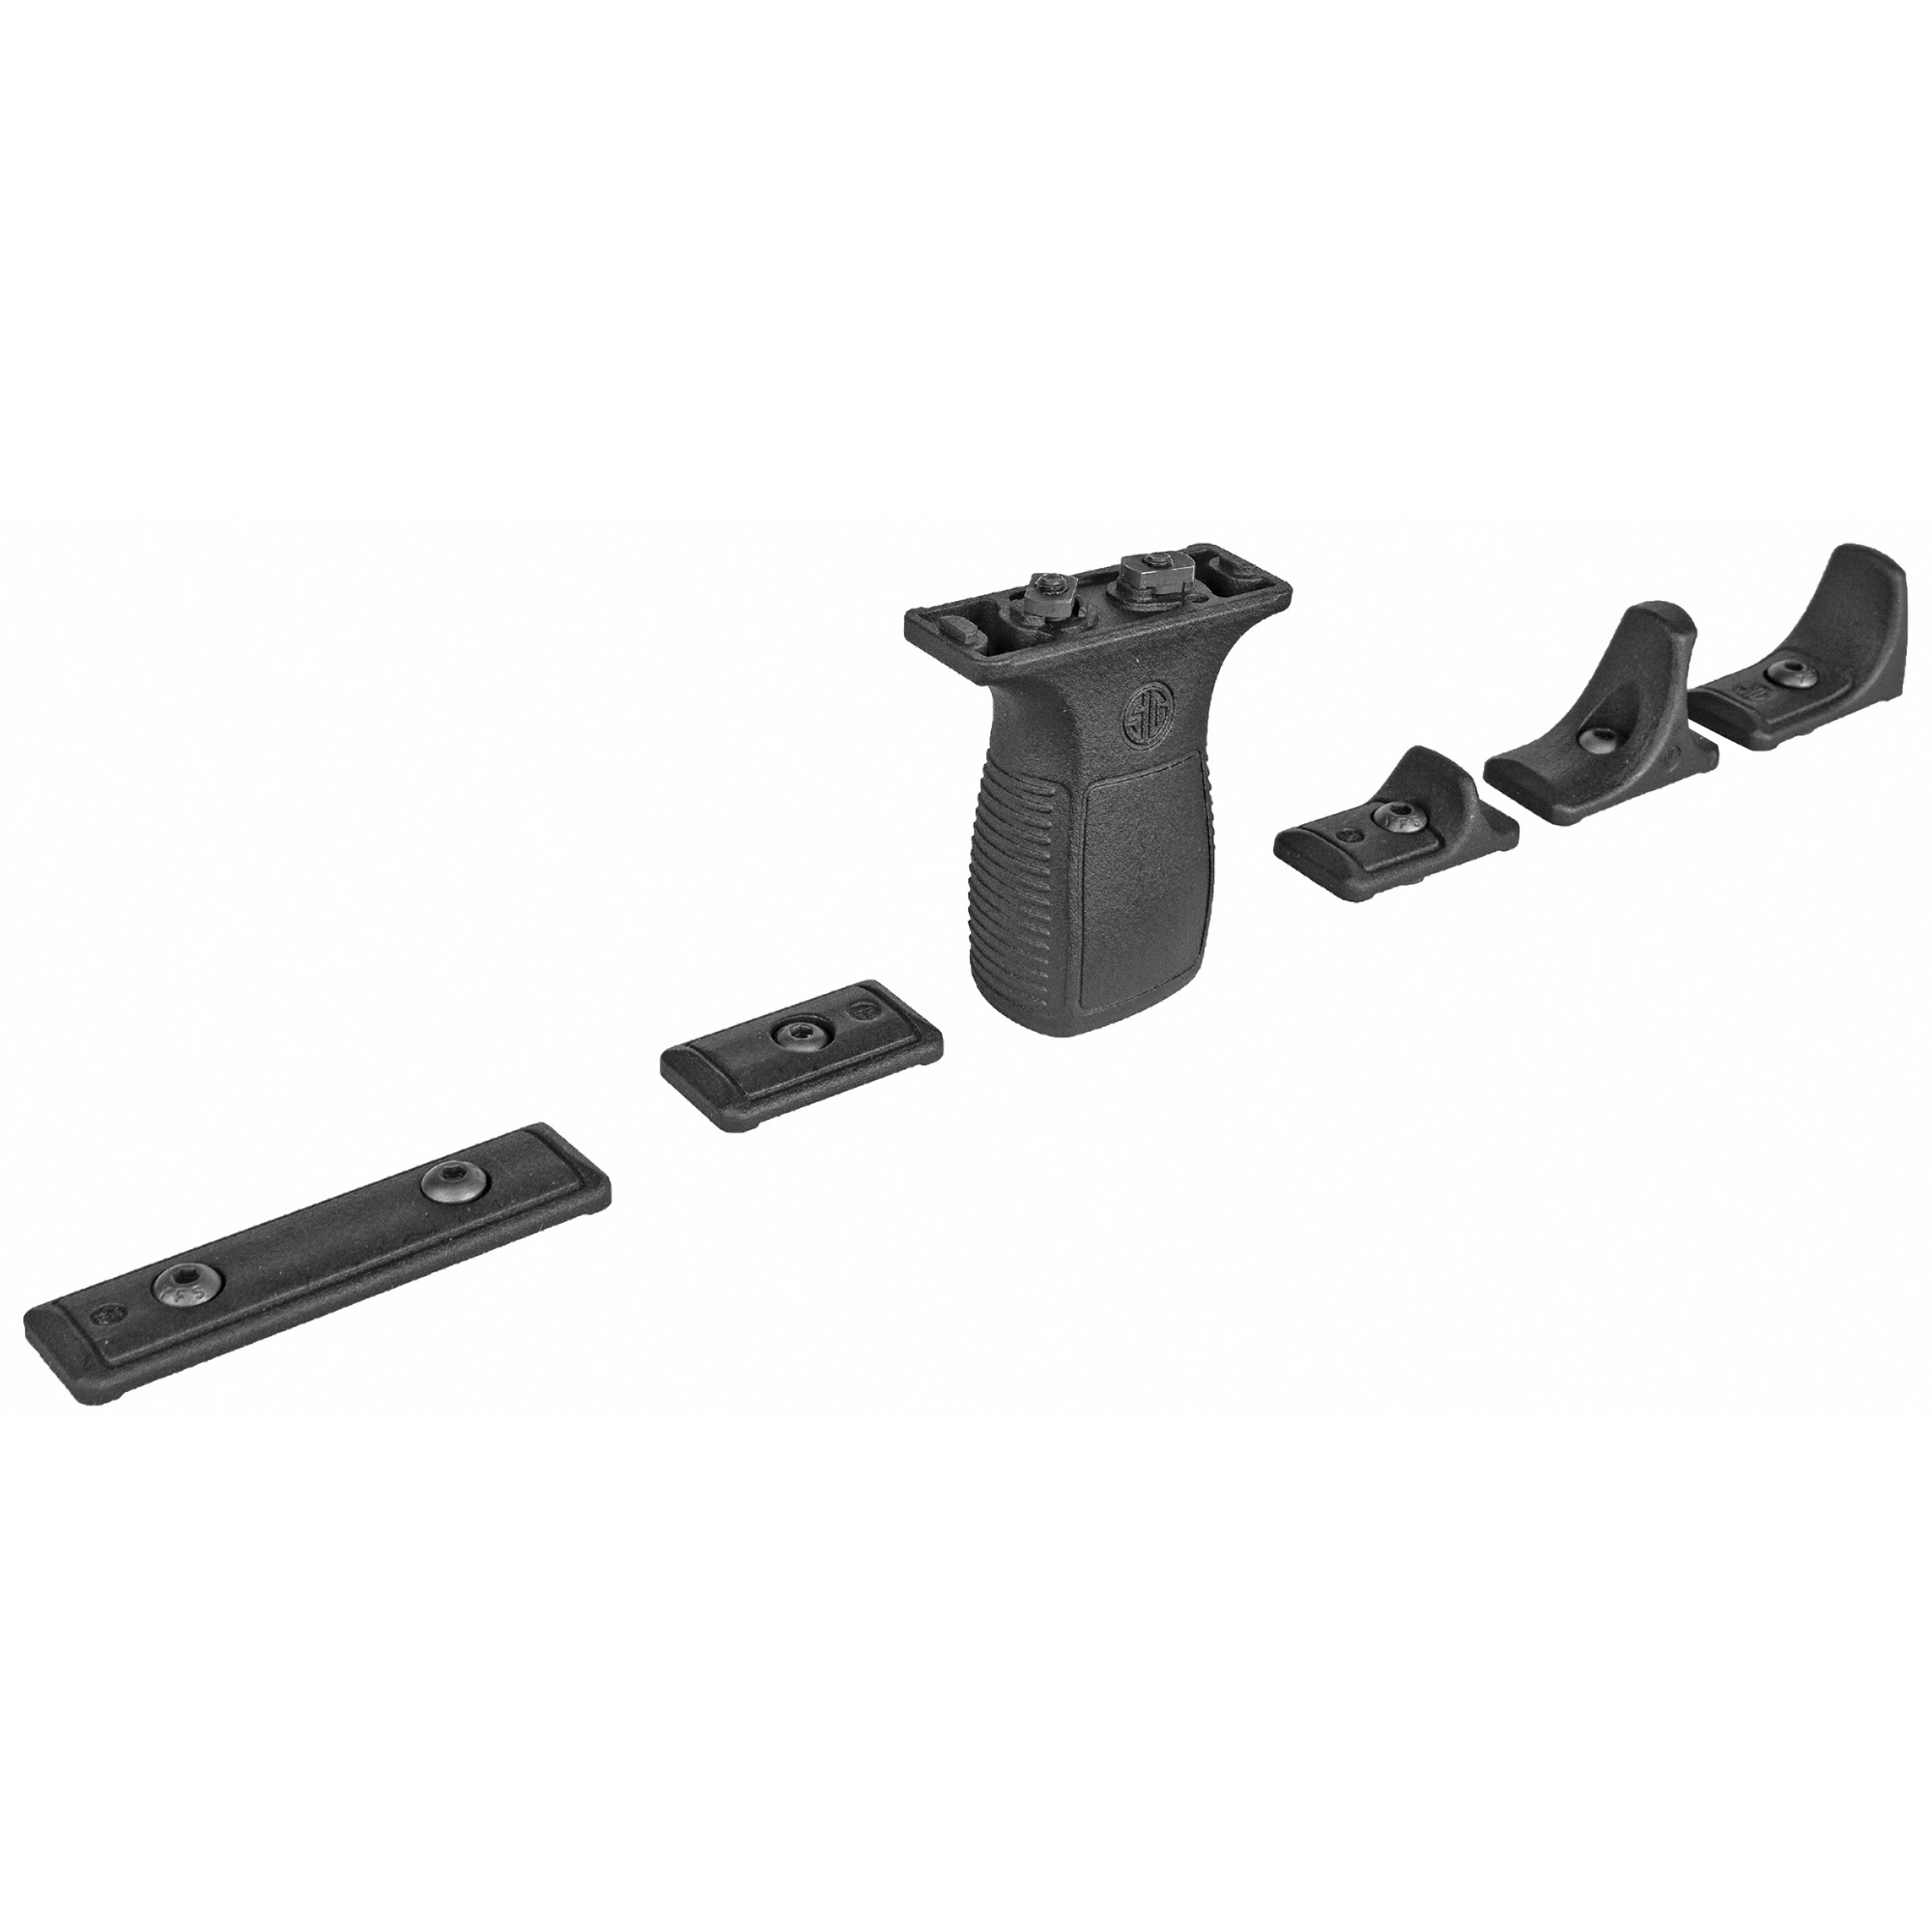 The Tread M-LOK vertical forward grip kit is the factory replacement kit for the M400 Tread.